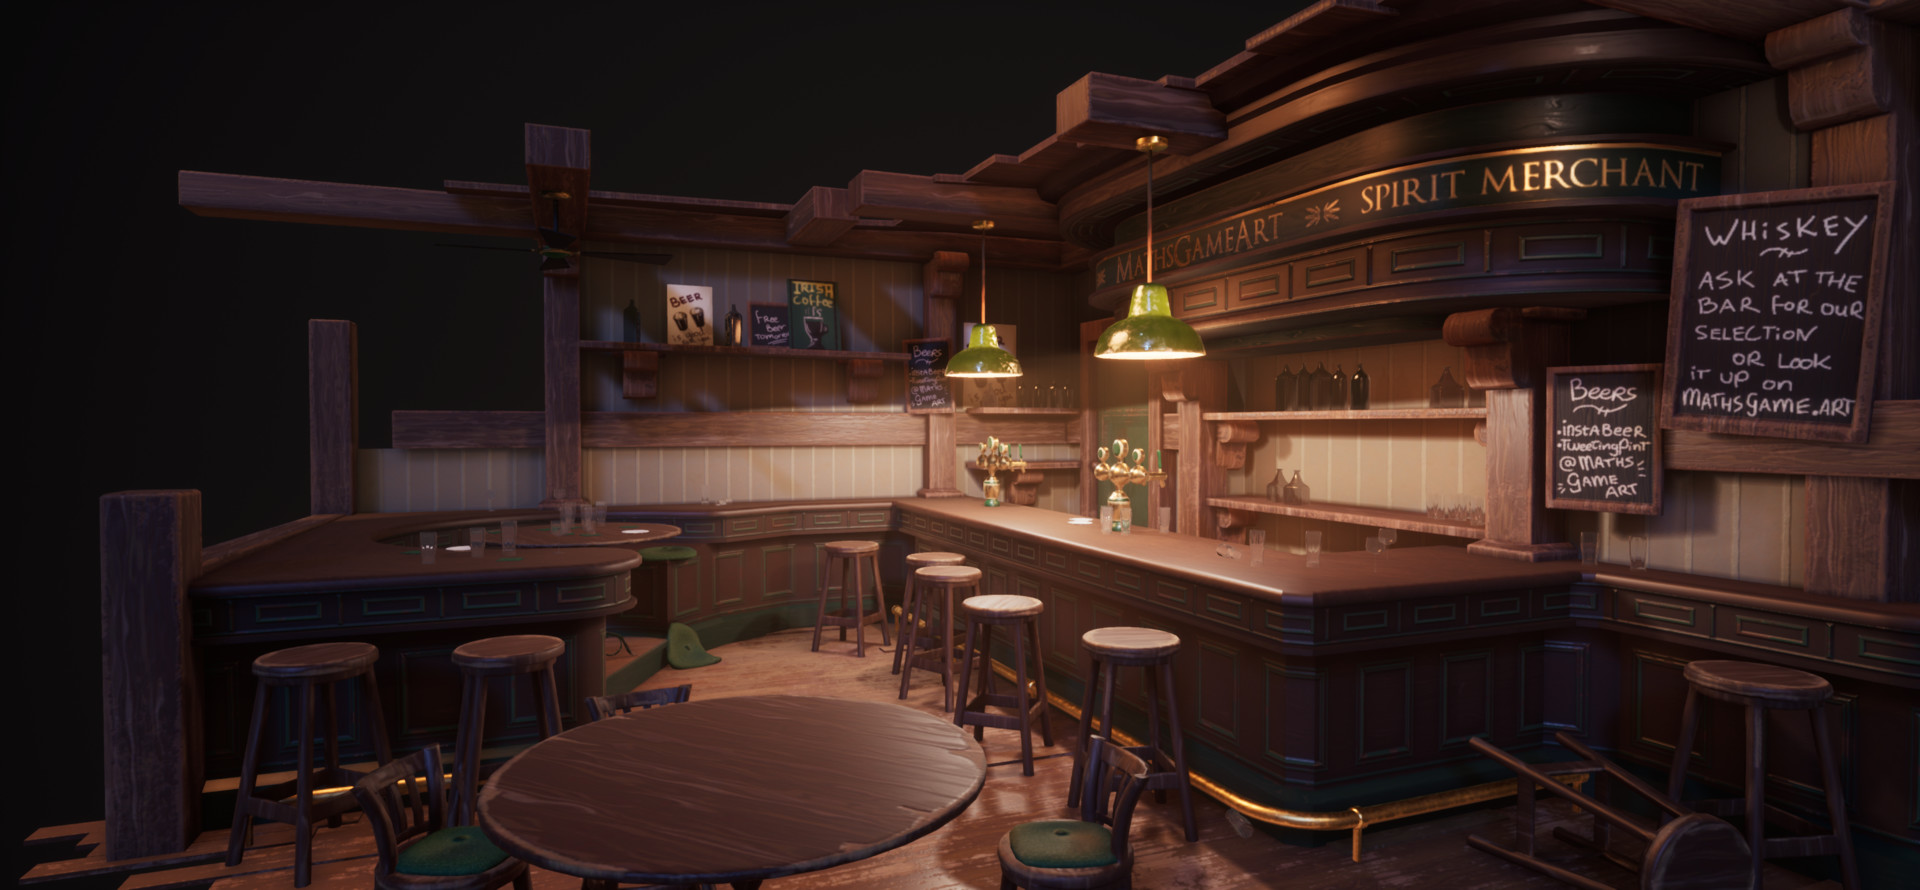 Artstation irish pub pbr interior diorama math roodhuizen